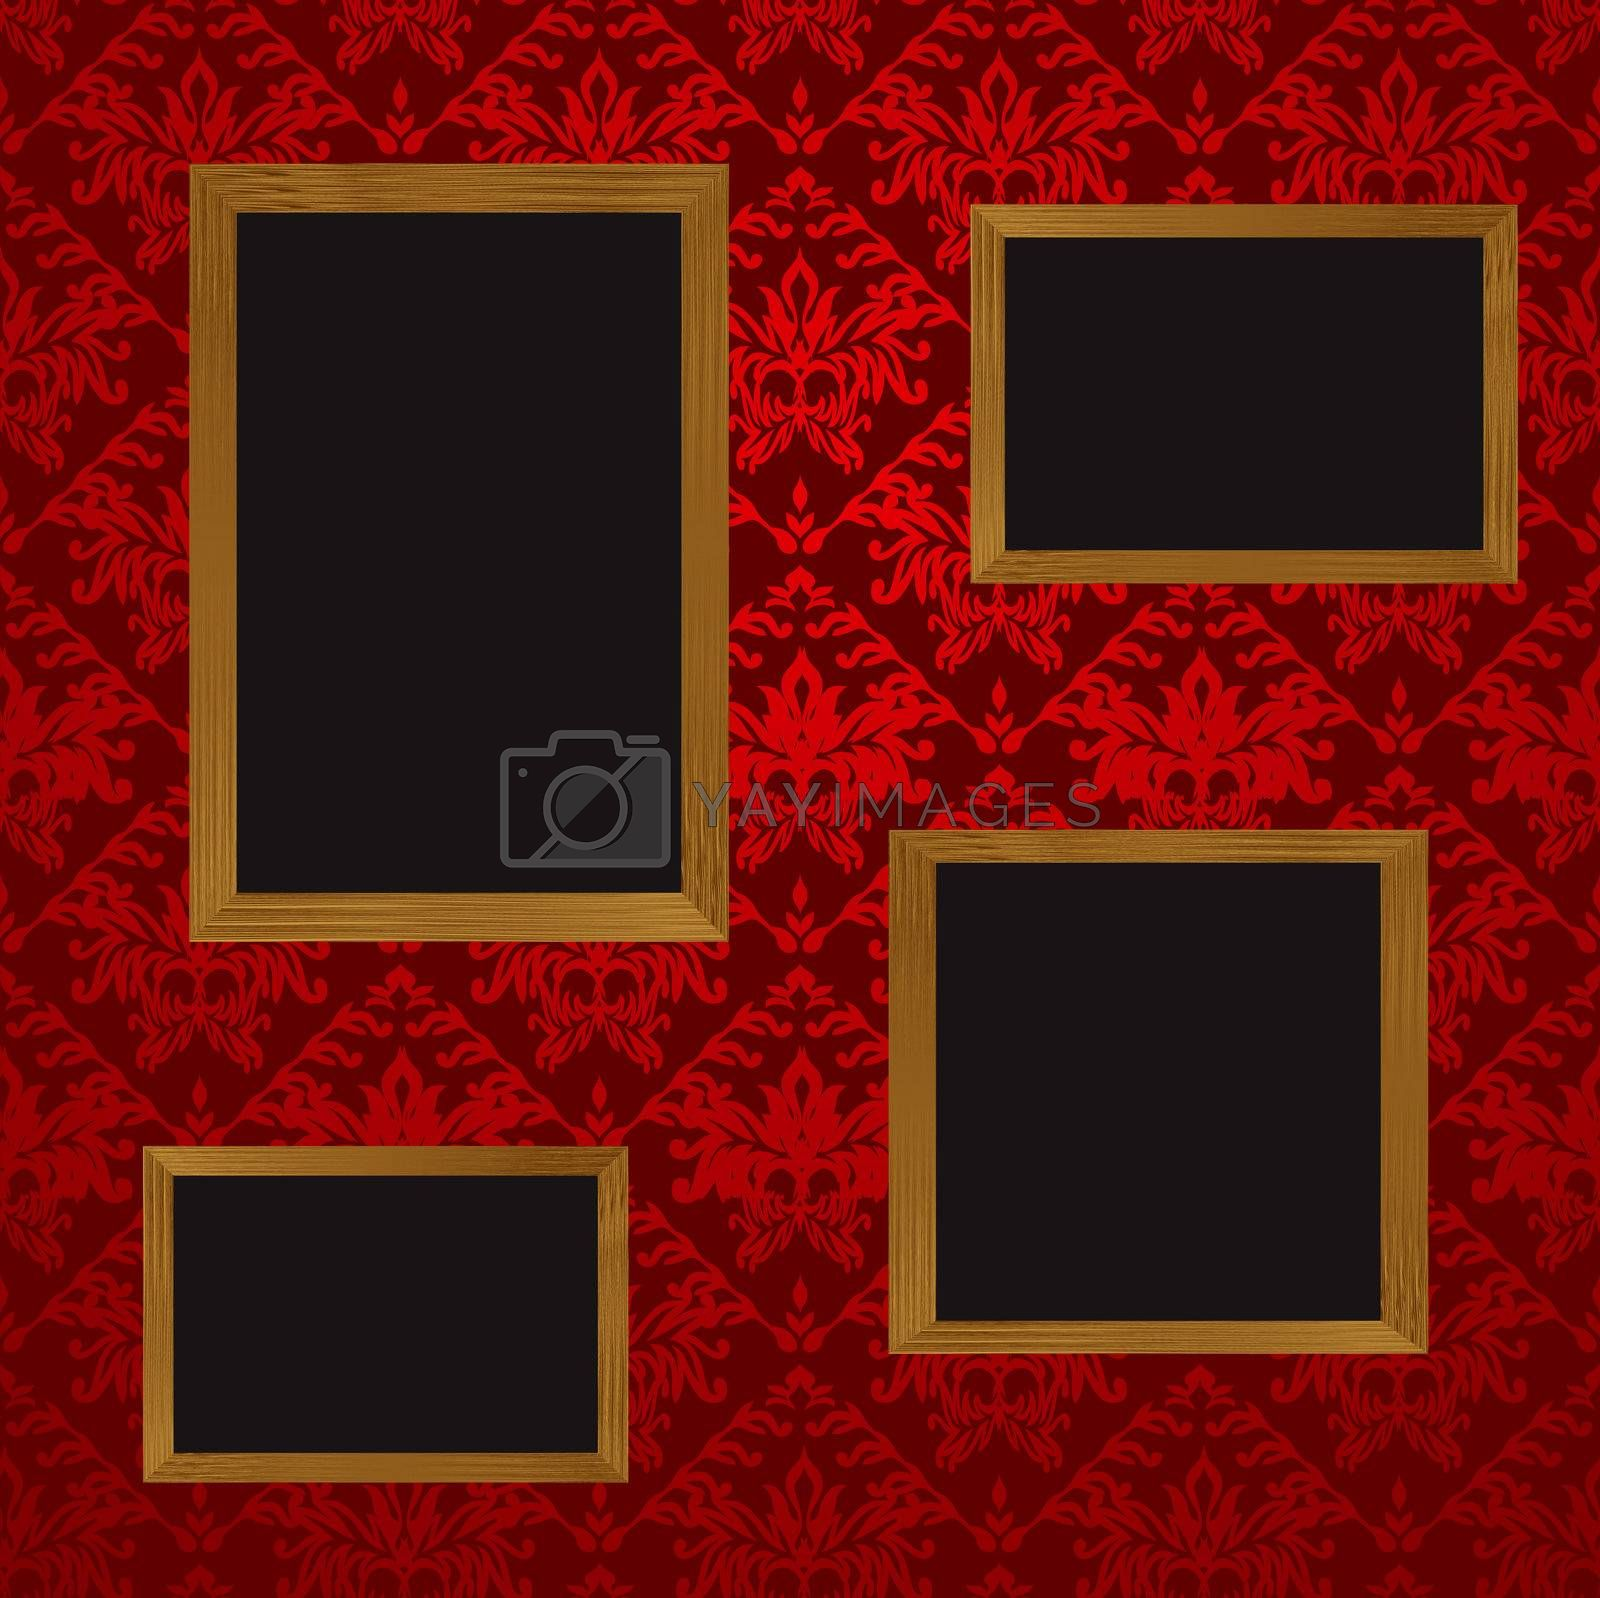 Four wooden picture frames with blank space for your own picture and red wallpaper design